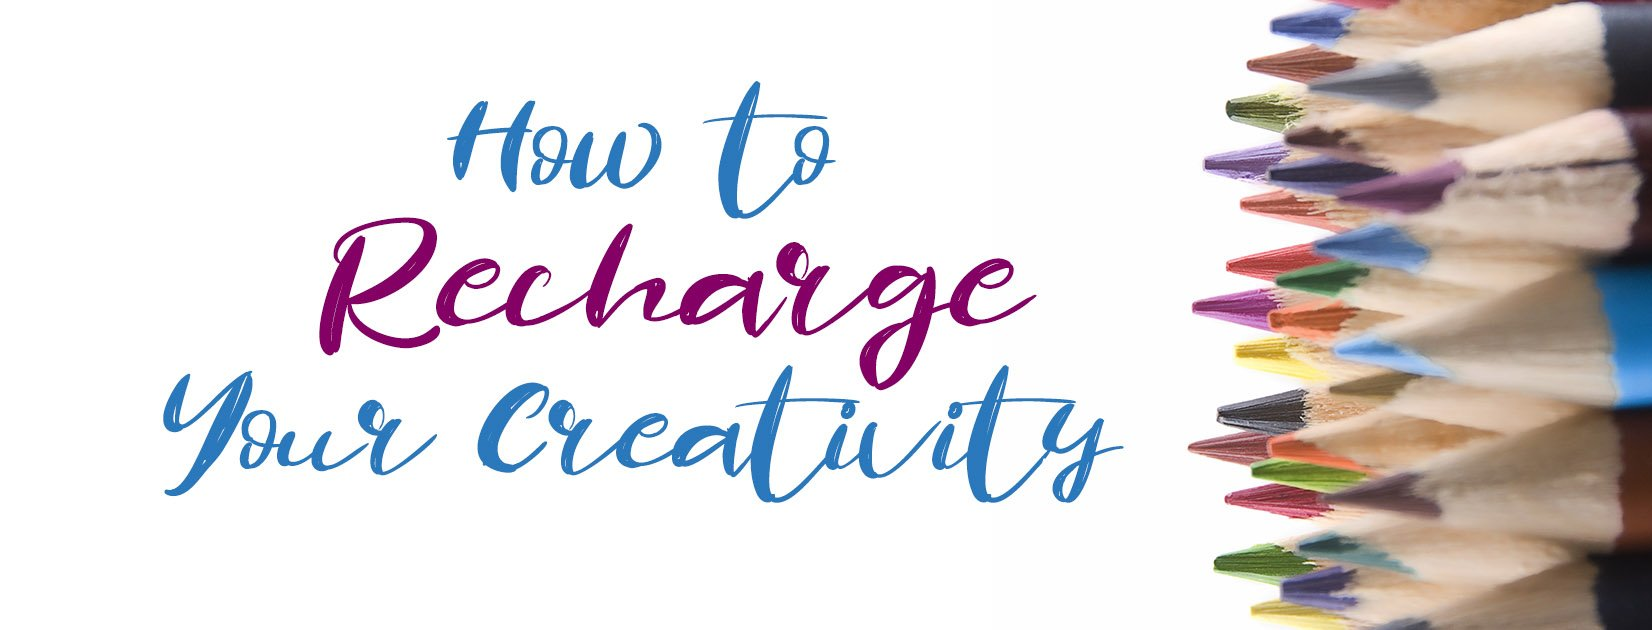 How to Recharge Your Creativity